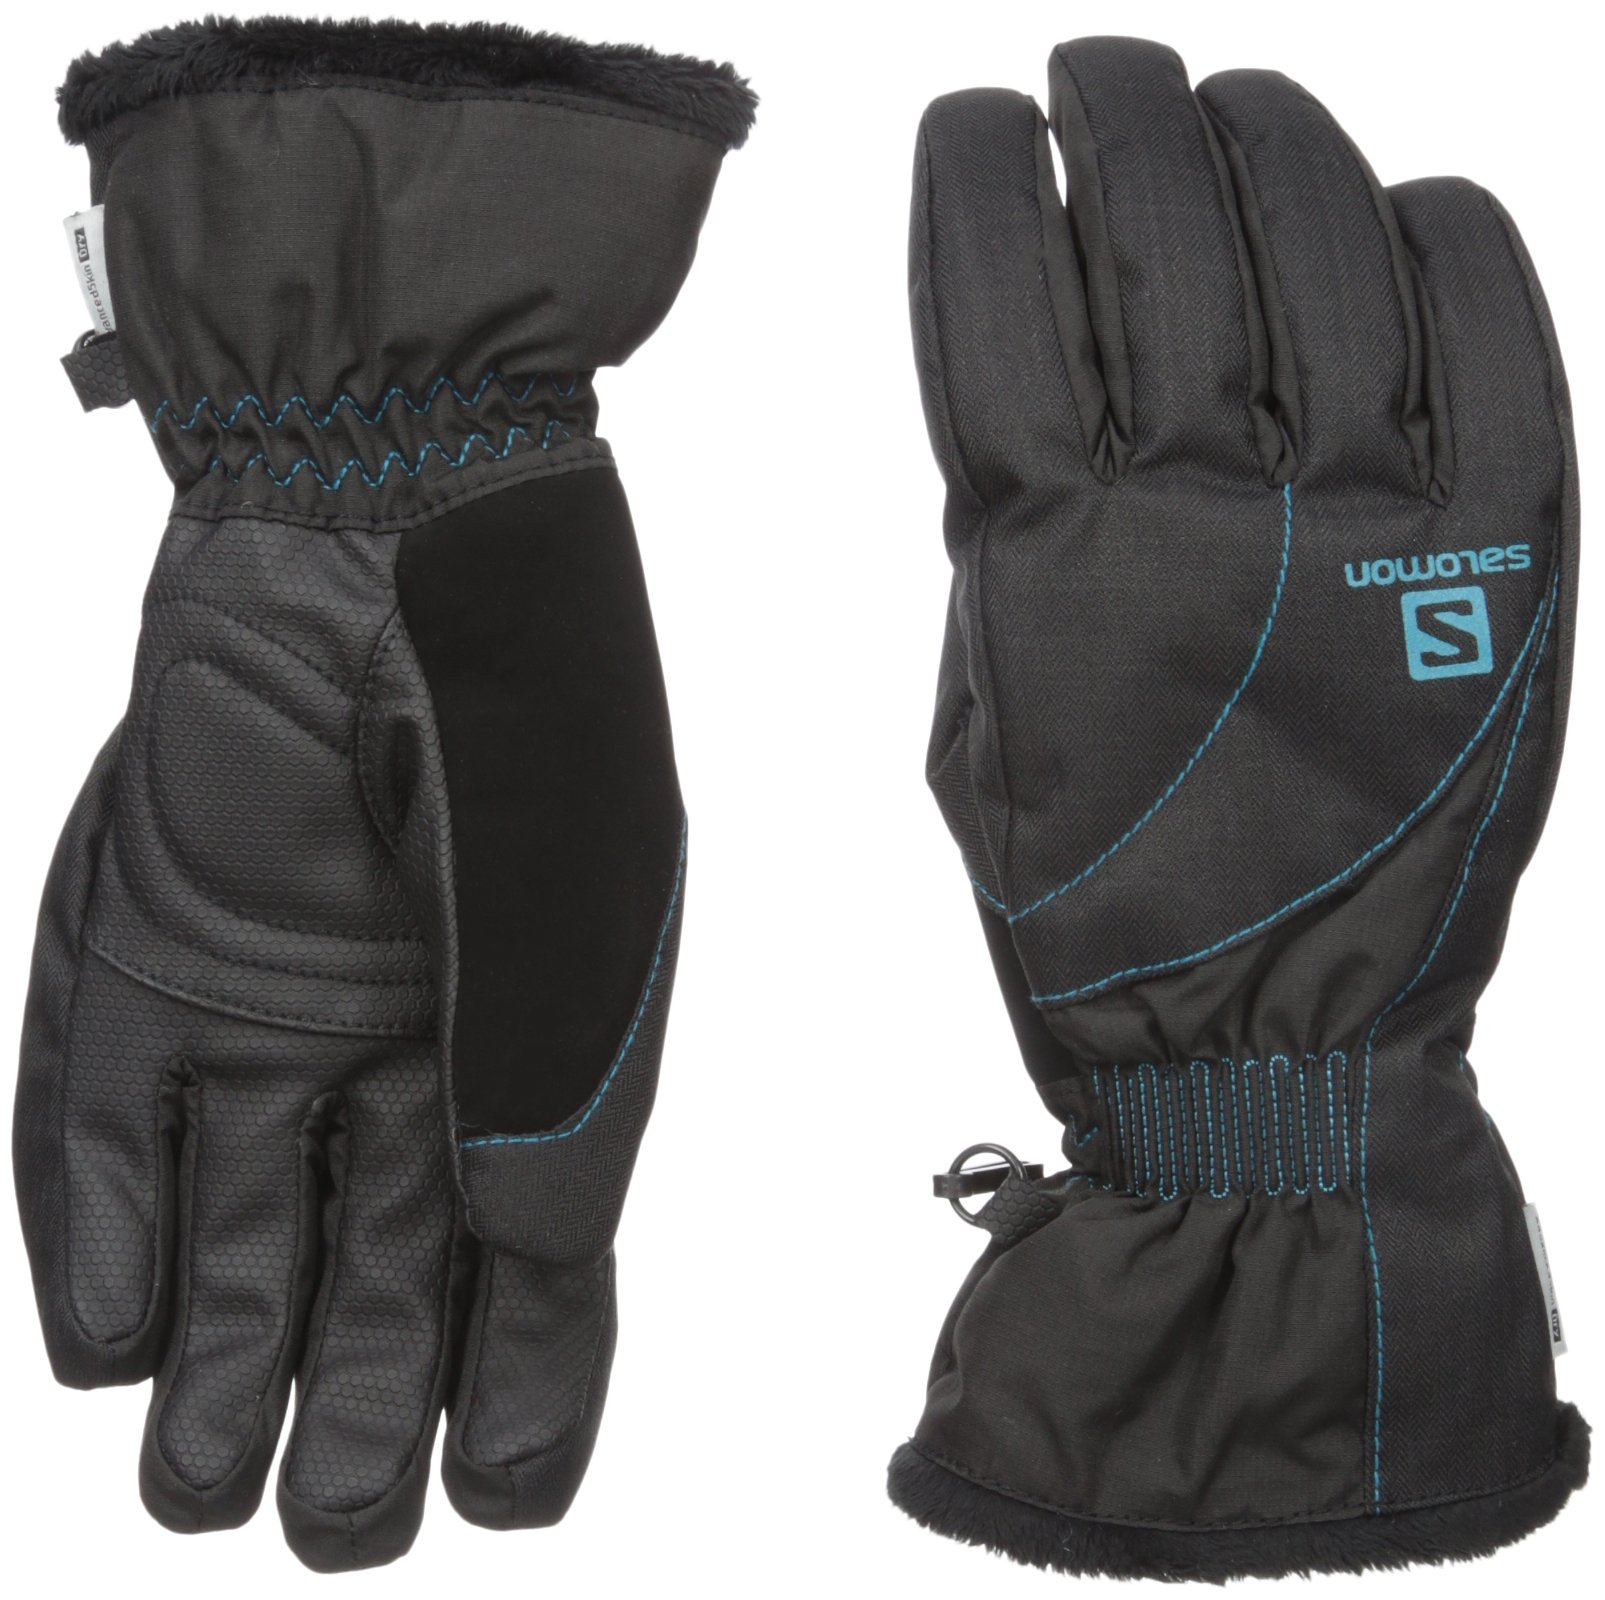 Salomon Women's Force Dry Gloves, Black/Kouak Blue, Small